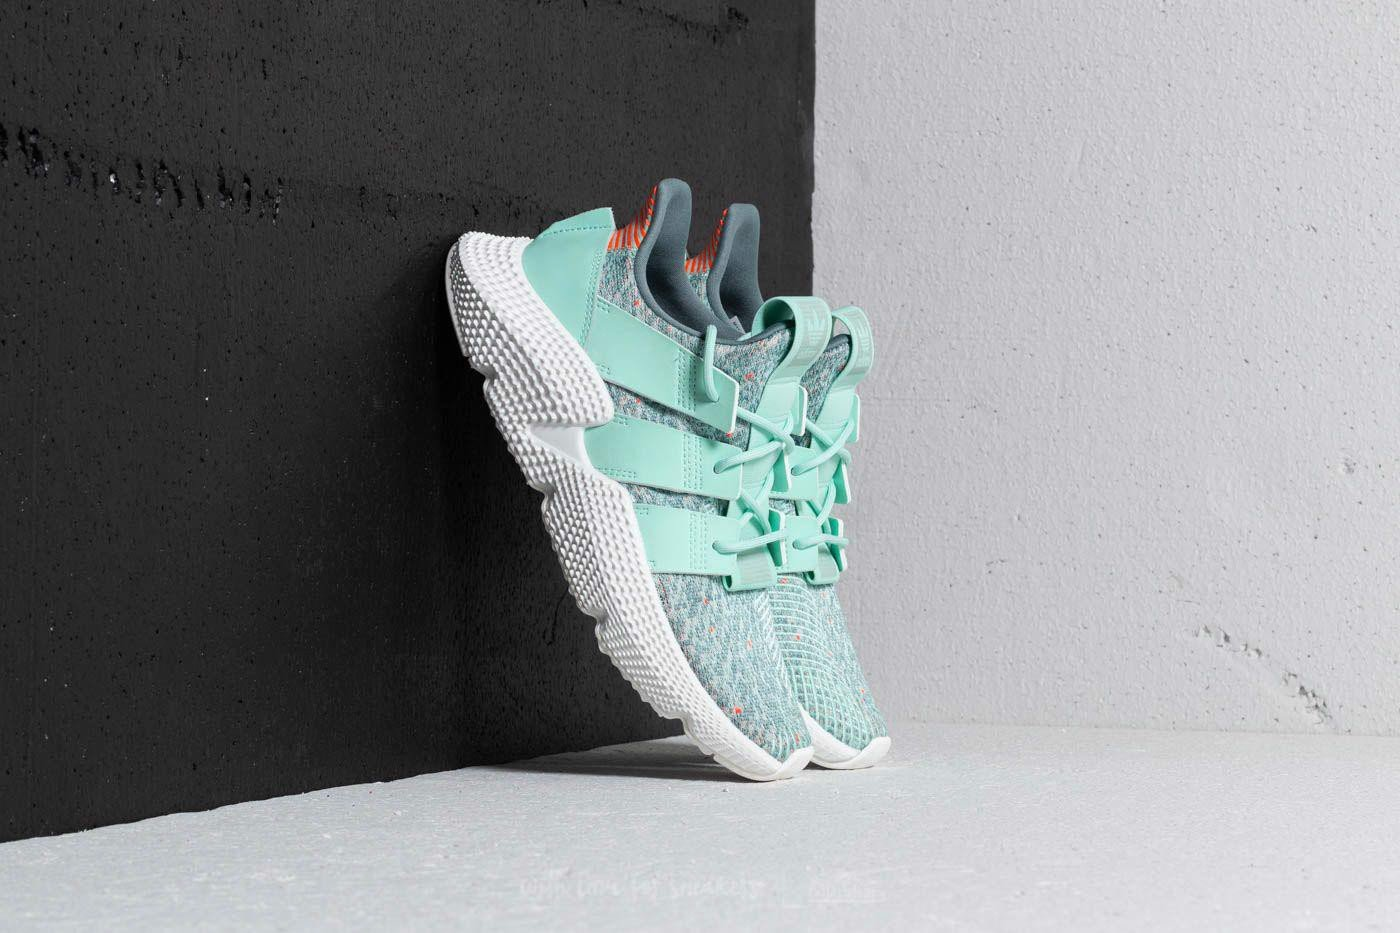 Adidas Prophere 'Clear Mint' AQ1138